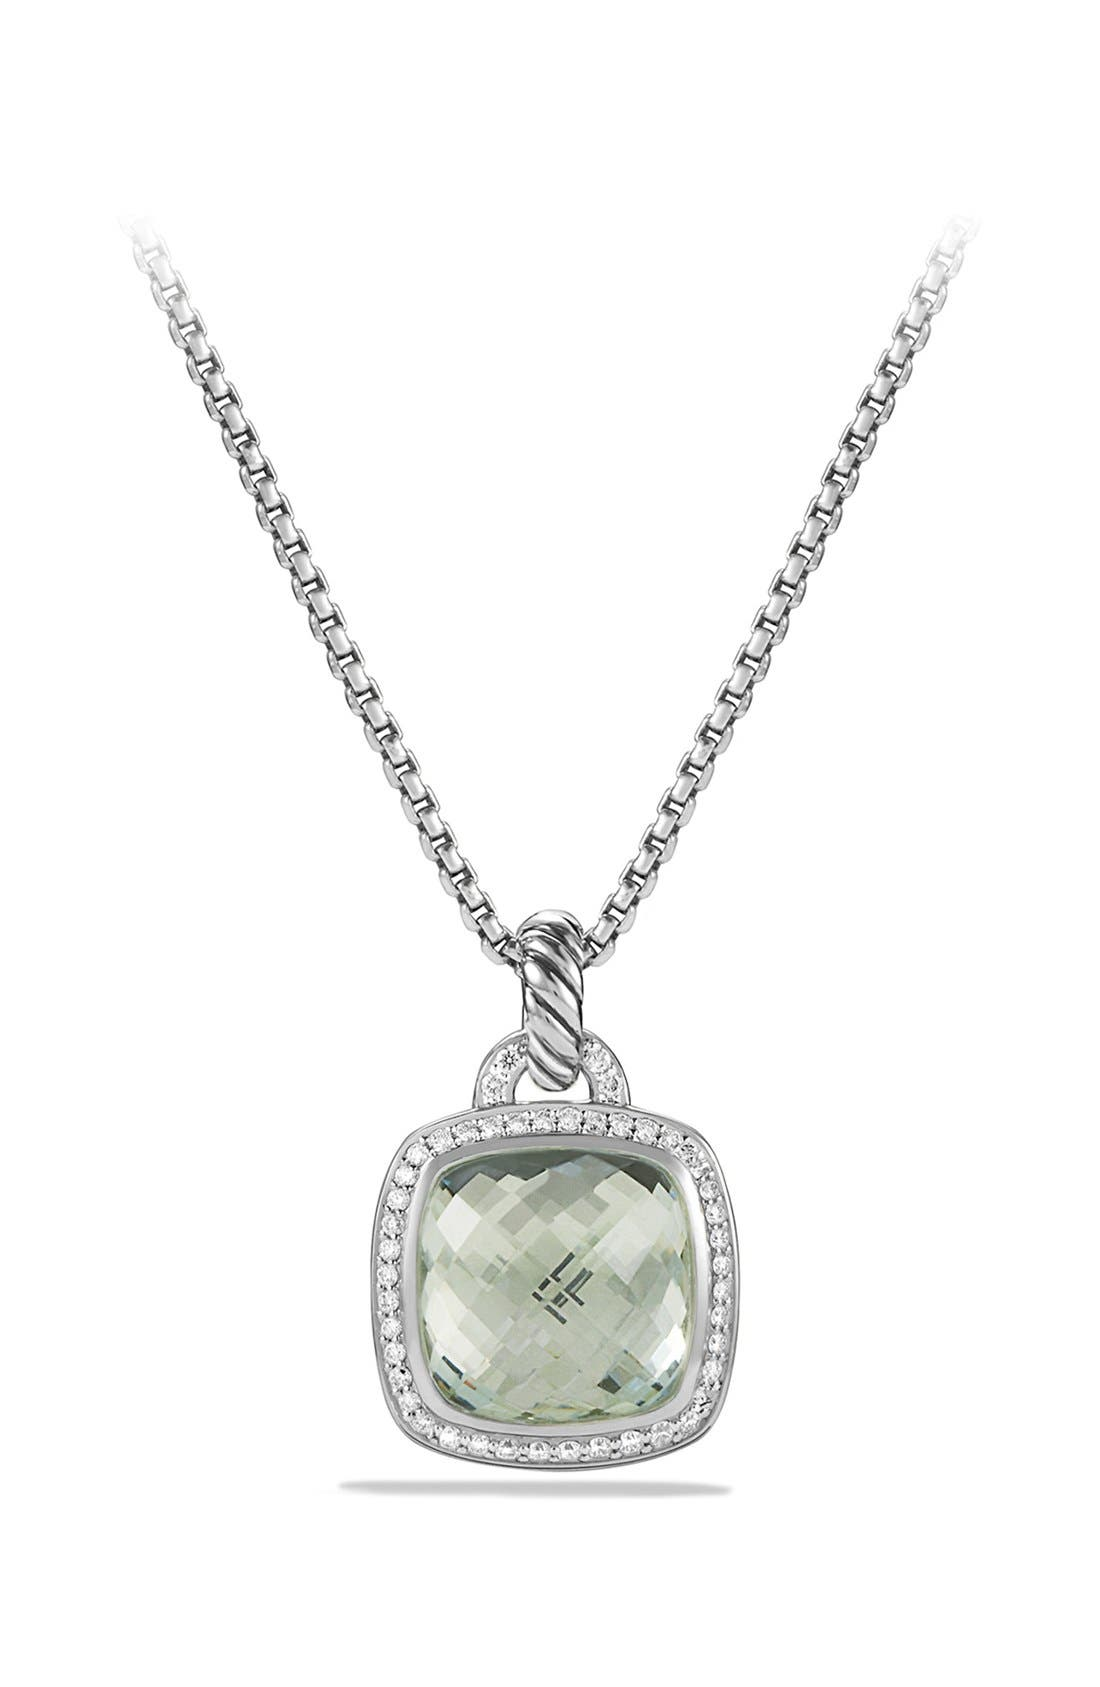 Main Image - David Yurman 'Albion' Pendant with Semiprecious Stone and Diamonds